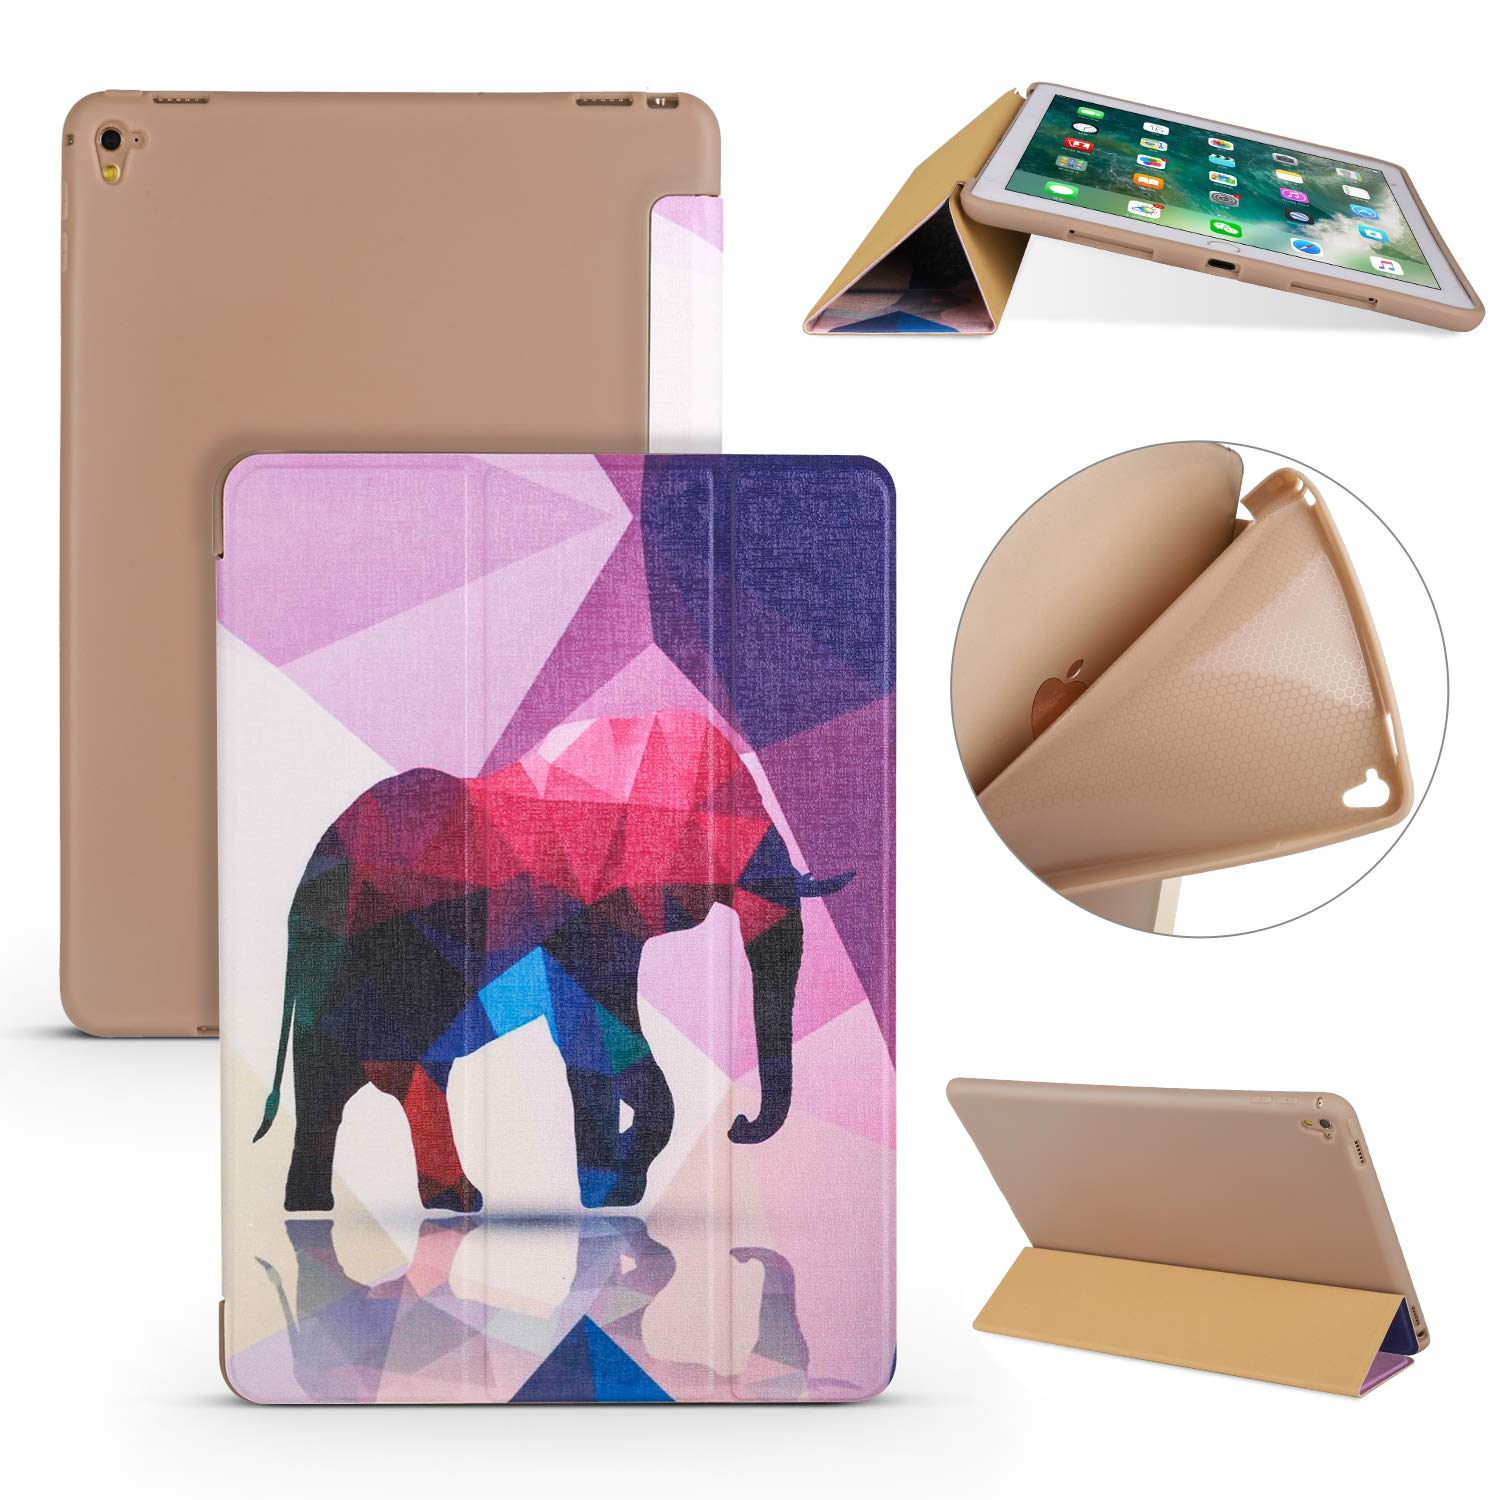 9.7 iPad 2018/2017 5th / 6th Case, Earcase Smart iPad Case PU Leather Case Shockproof Soft TPU Back Cover Stand Cover Auto Sleep/Wake Function for iPad Air/iPad Air 2/2017/2018 New iPad 9.7 inch-A10